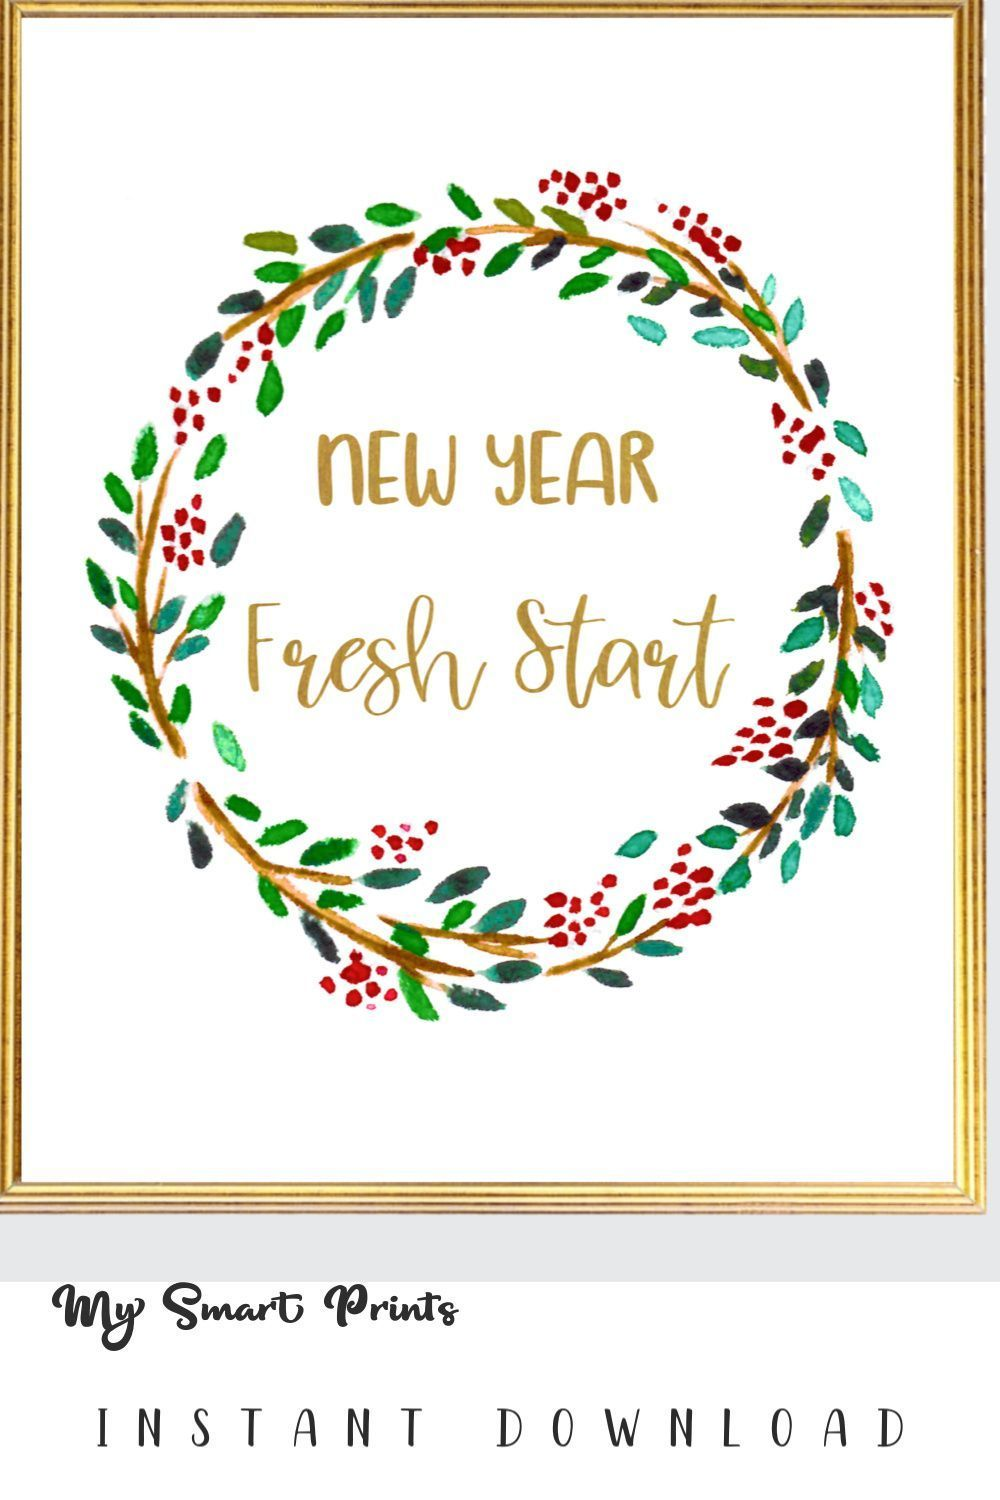 New Year New Start Holiday Inspirational Printable Wall Art, Green Red Wreath New Year Wall Decor,  #Art #Decor #Green #Holiday #inspirational #Printable #professionalofficeinspirationdecor #Red #Start #wall #Wreath #Year